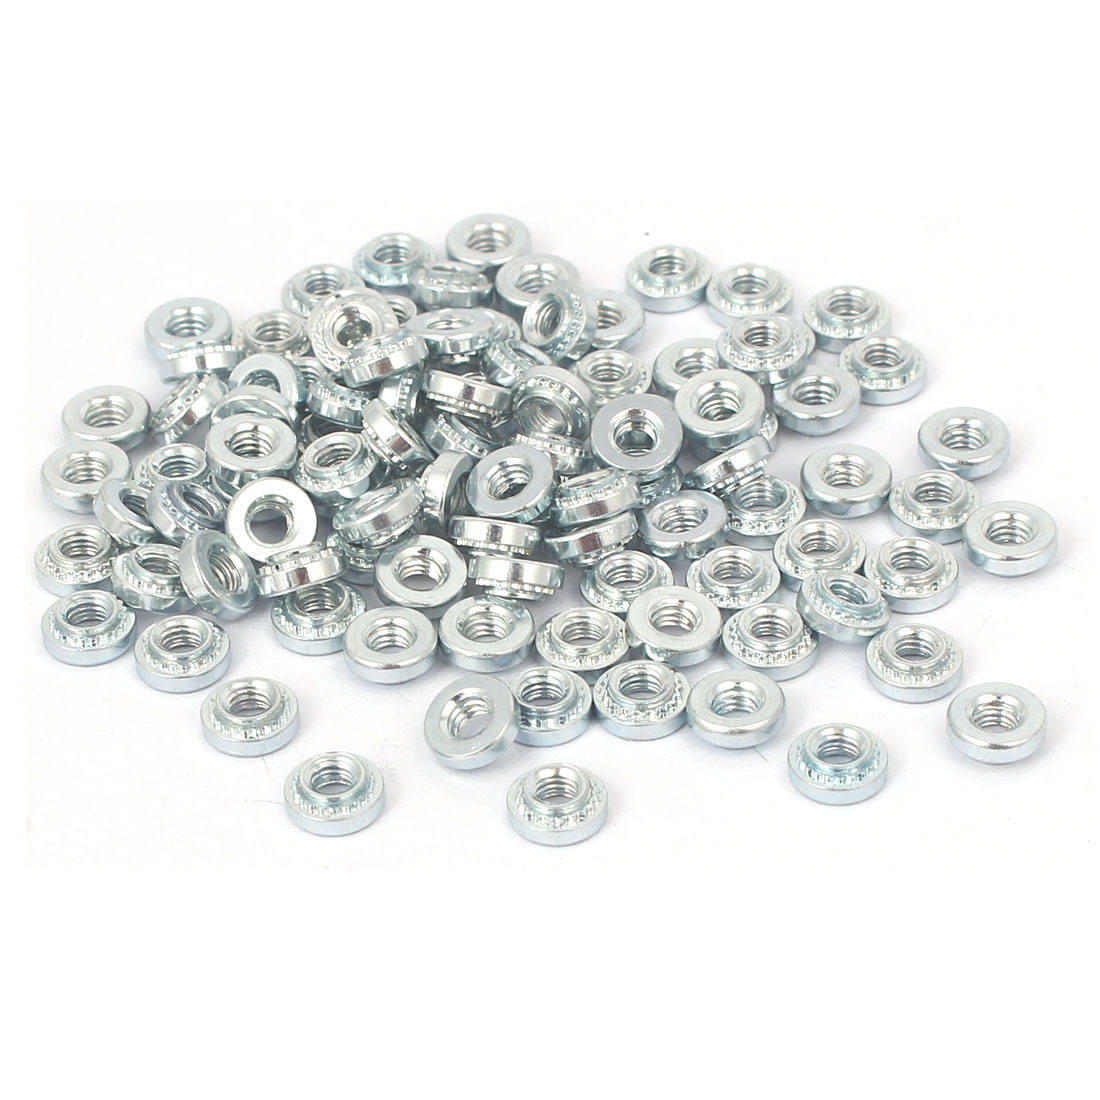 S-M3-1 Carbon Steel Self Clinching Rivet Nut Fastener 100pcs for 1.0mm Thin Plates